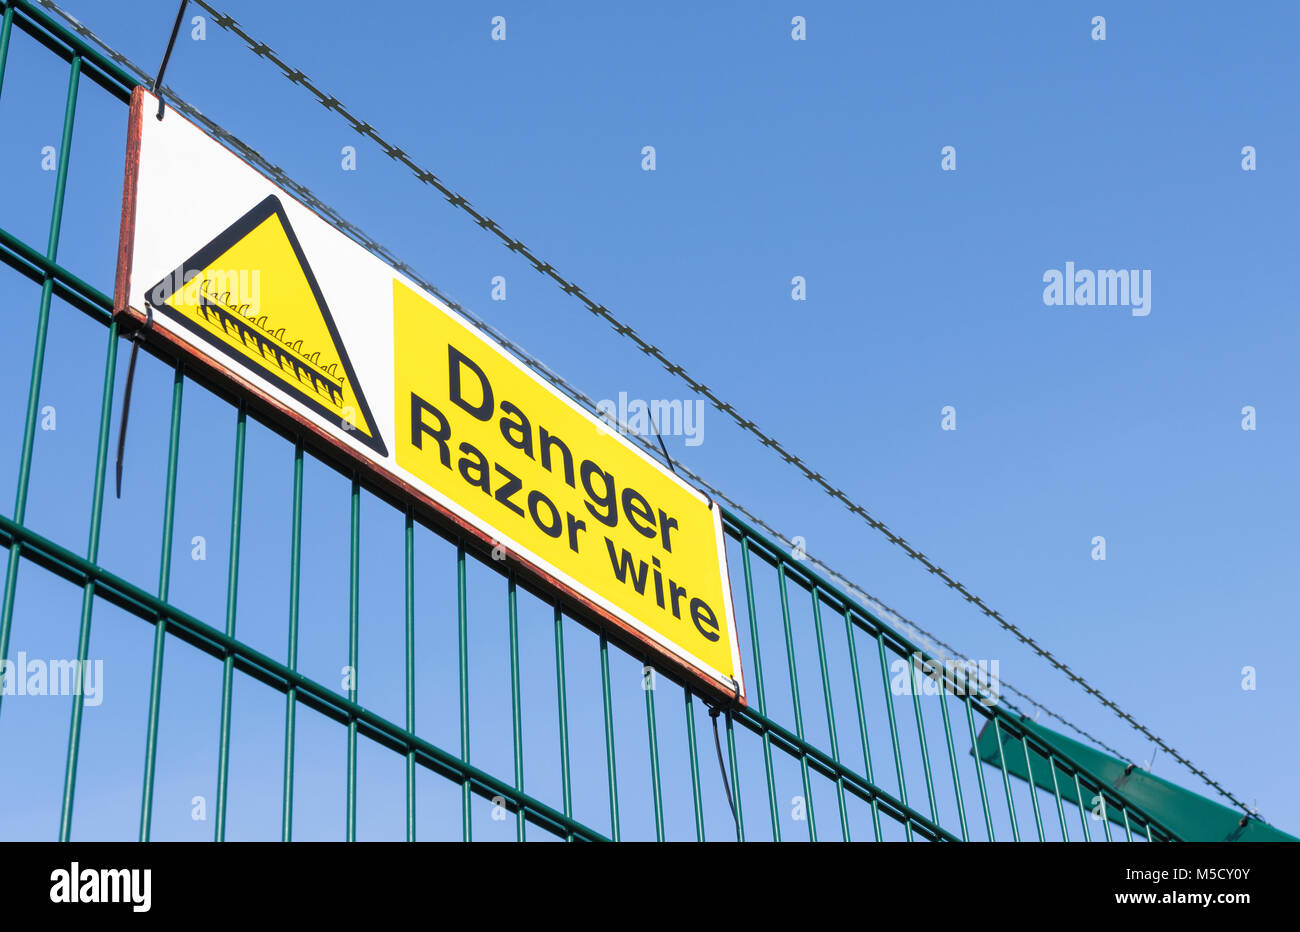 Danger Razor Wire warning sign on top of a security fence in the UK. - Stock Image